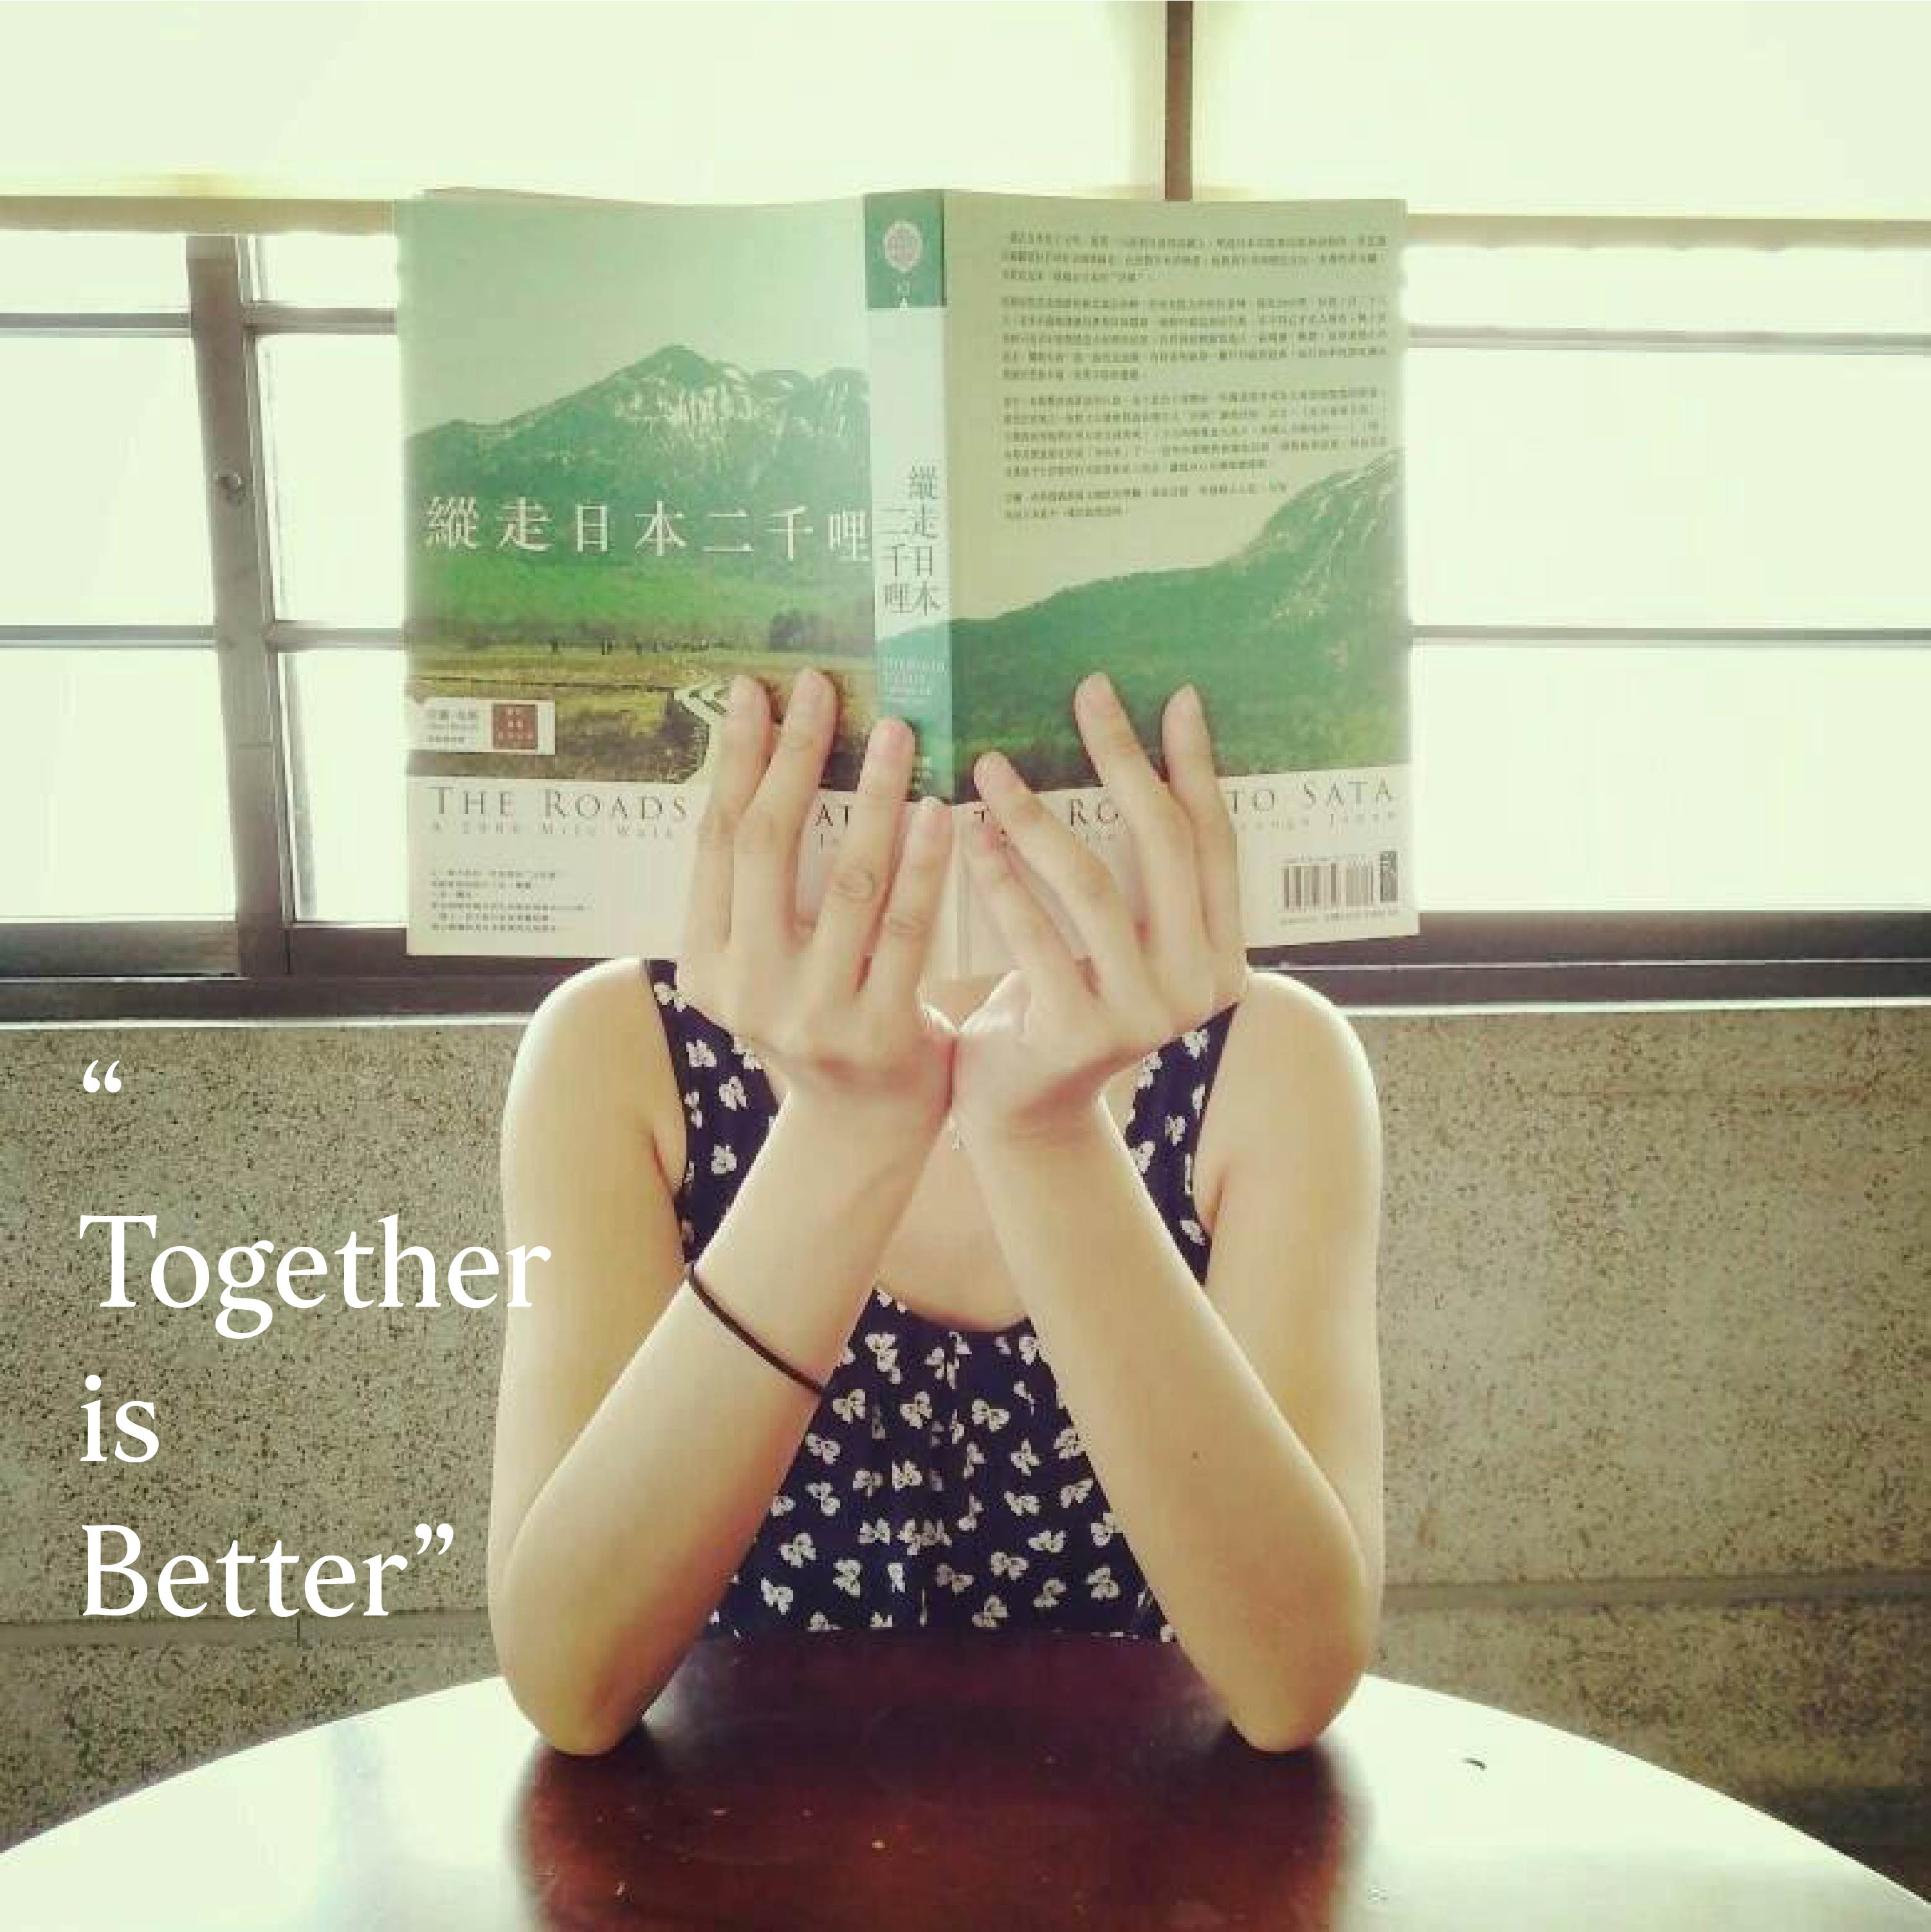 Together is Better 向孩子借來的地球。 S2 Ep.4